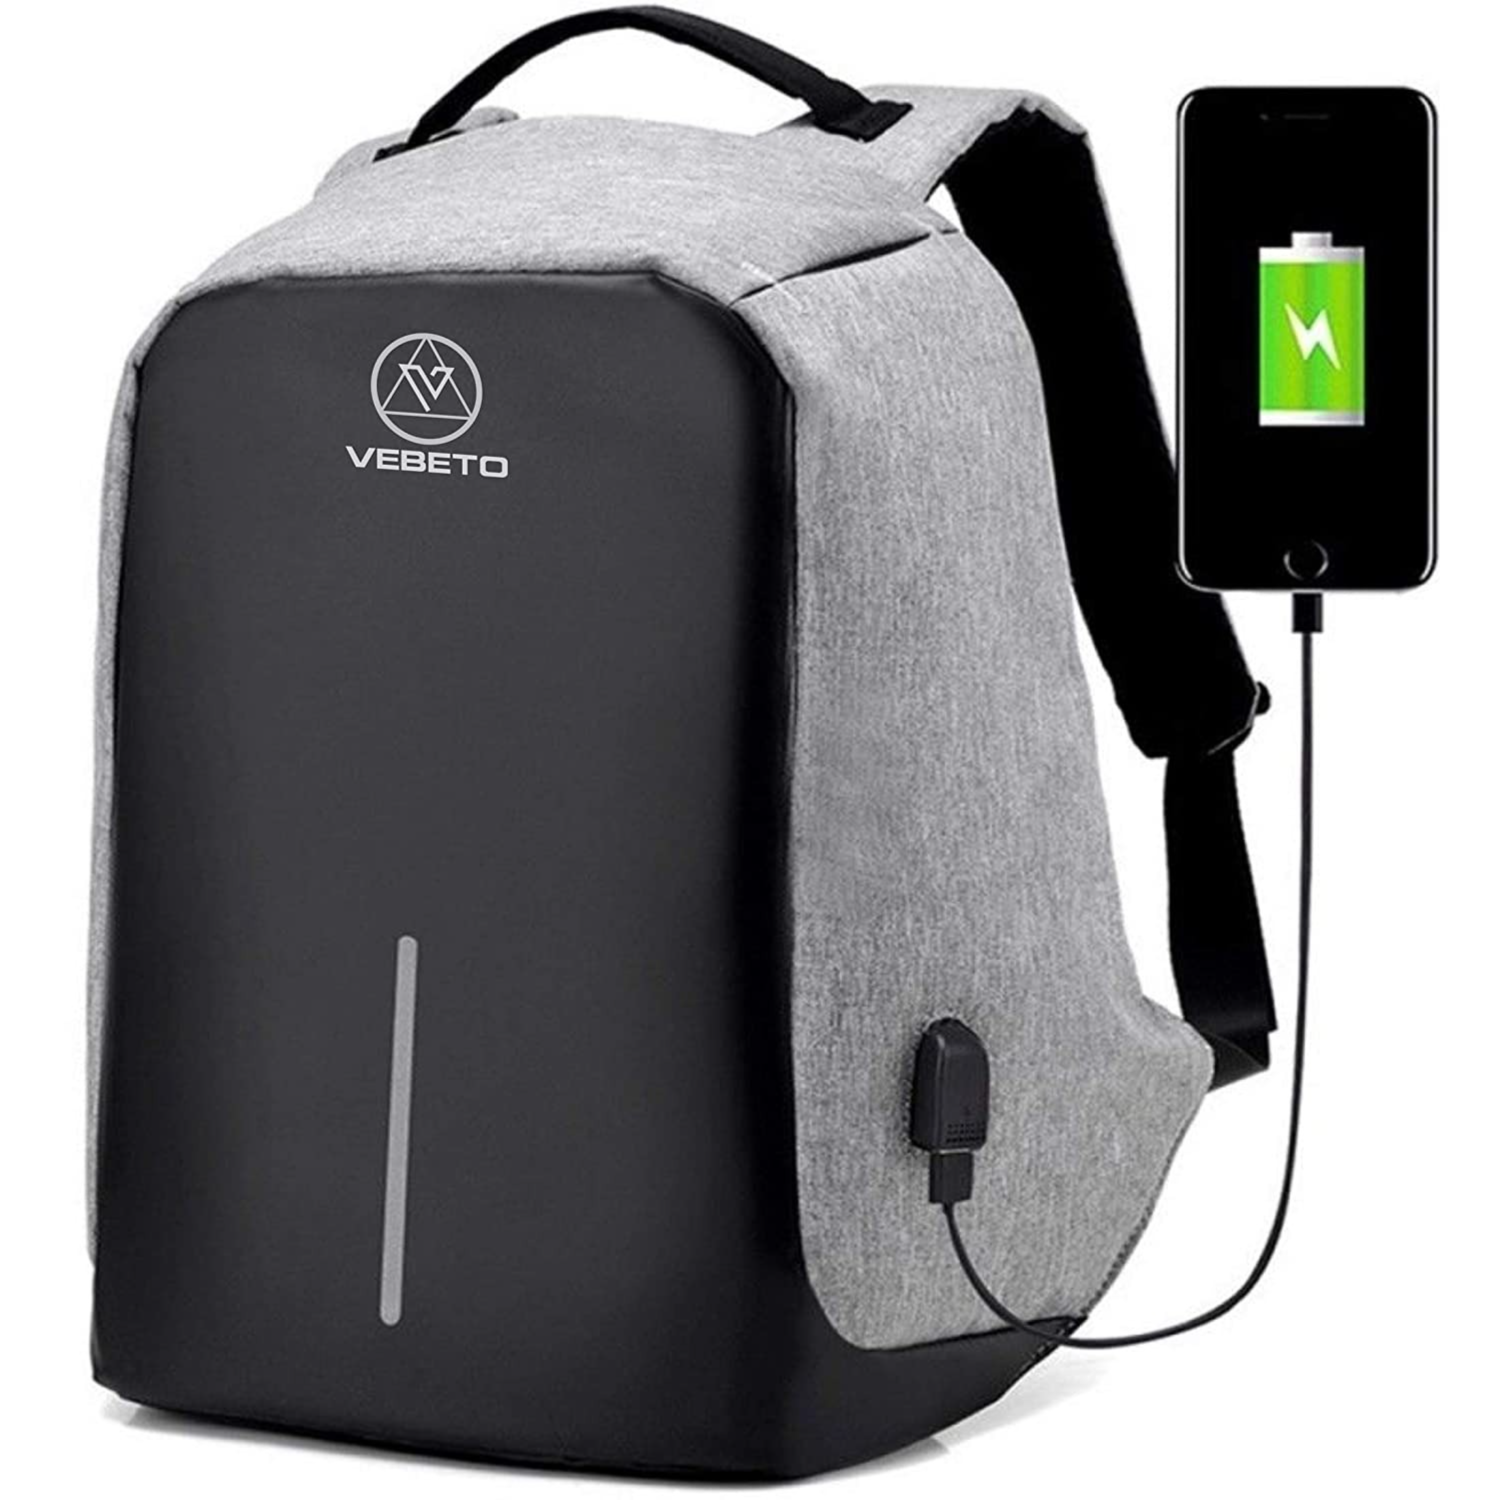 Vebeto Anti Theft Backpack 15.6 Inch Laptop Bagpack USB Charge Port Waterproof Casual College Office Bag Men Fashion (Grey) : Amazon.in: Bags, Wallets and Luggage